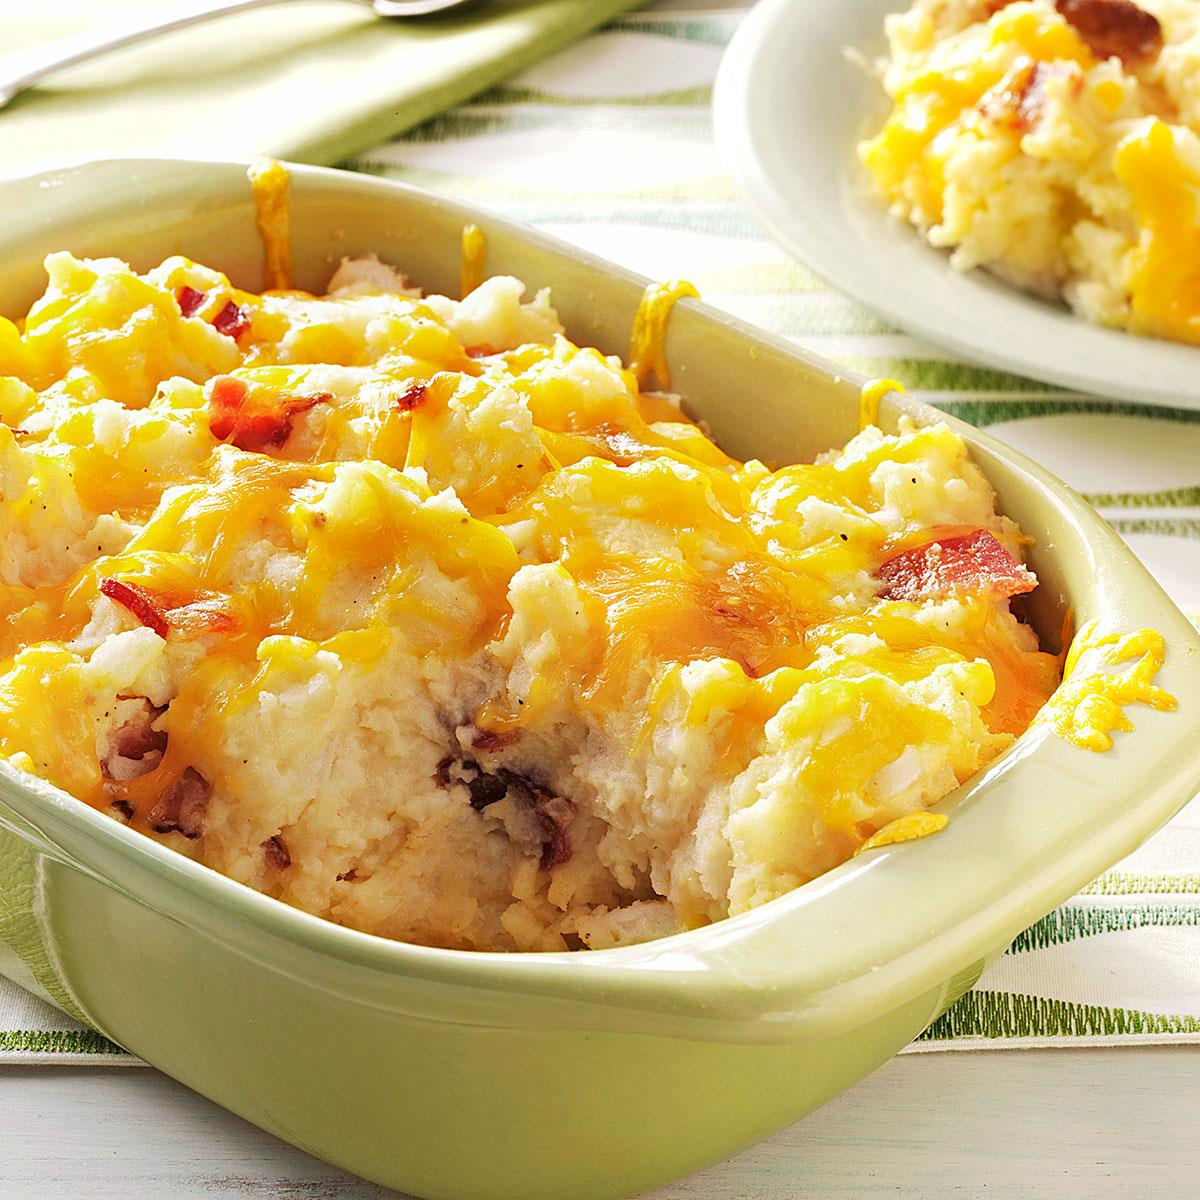 Delicious mashed potatoes recipes